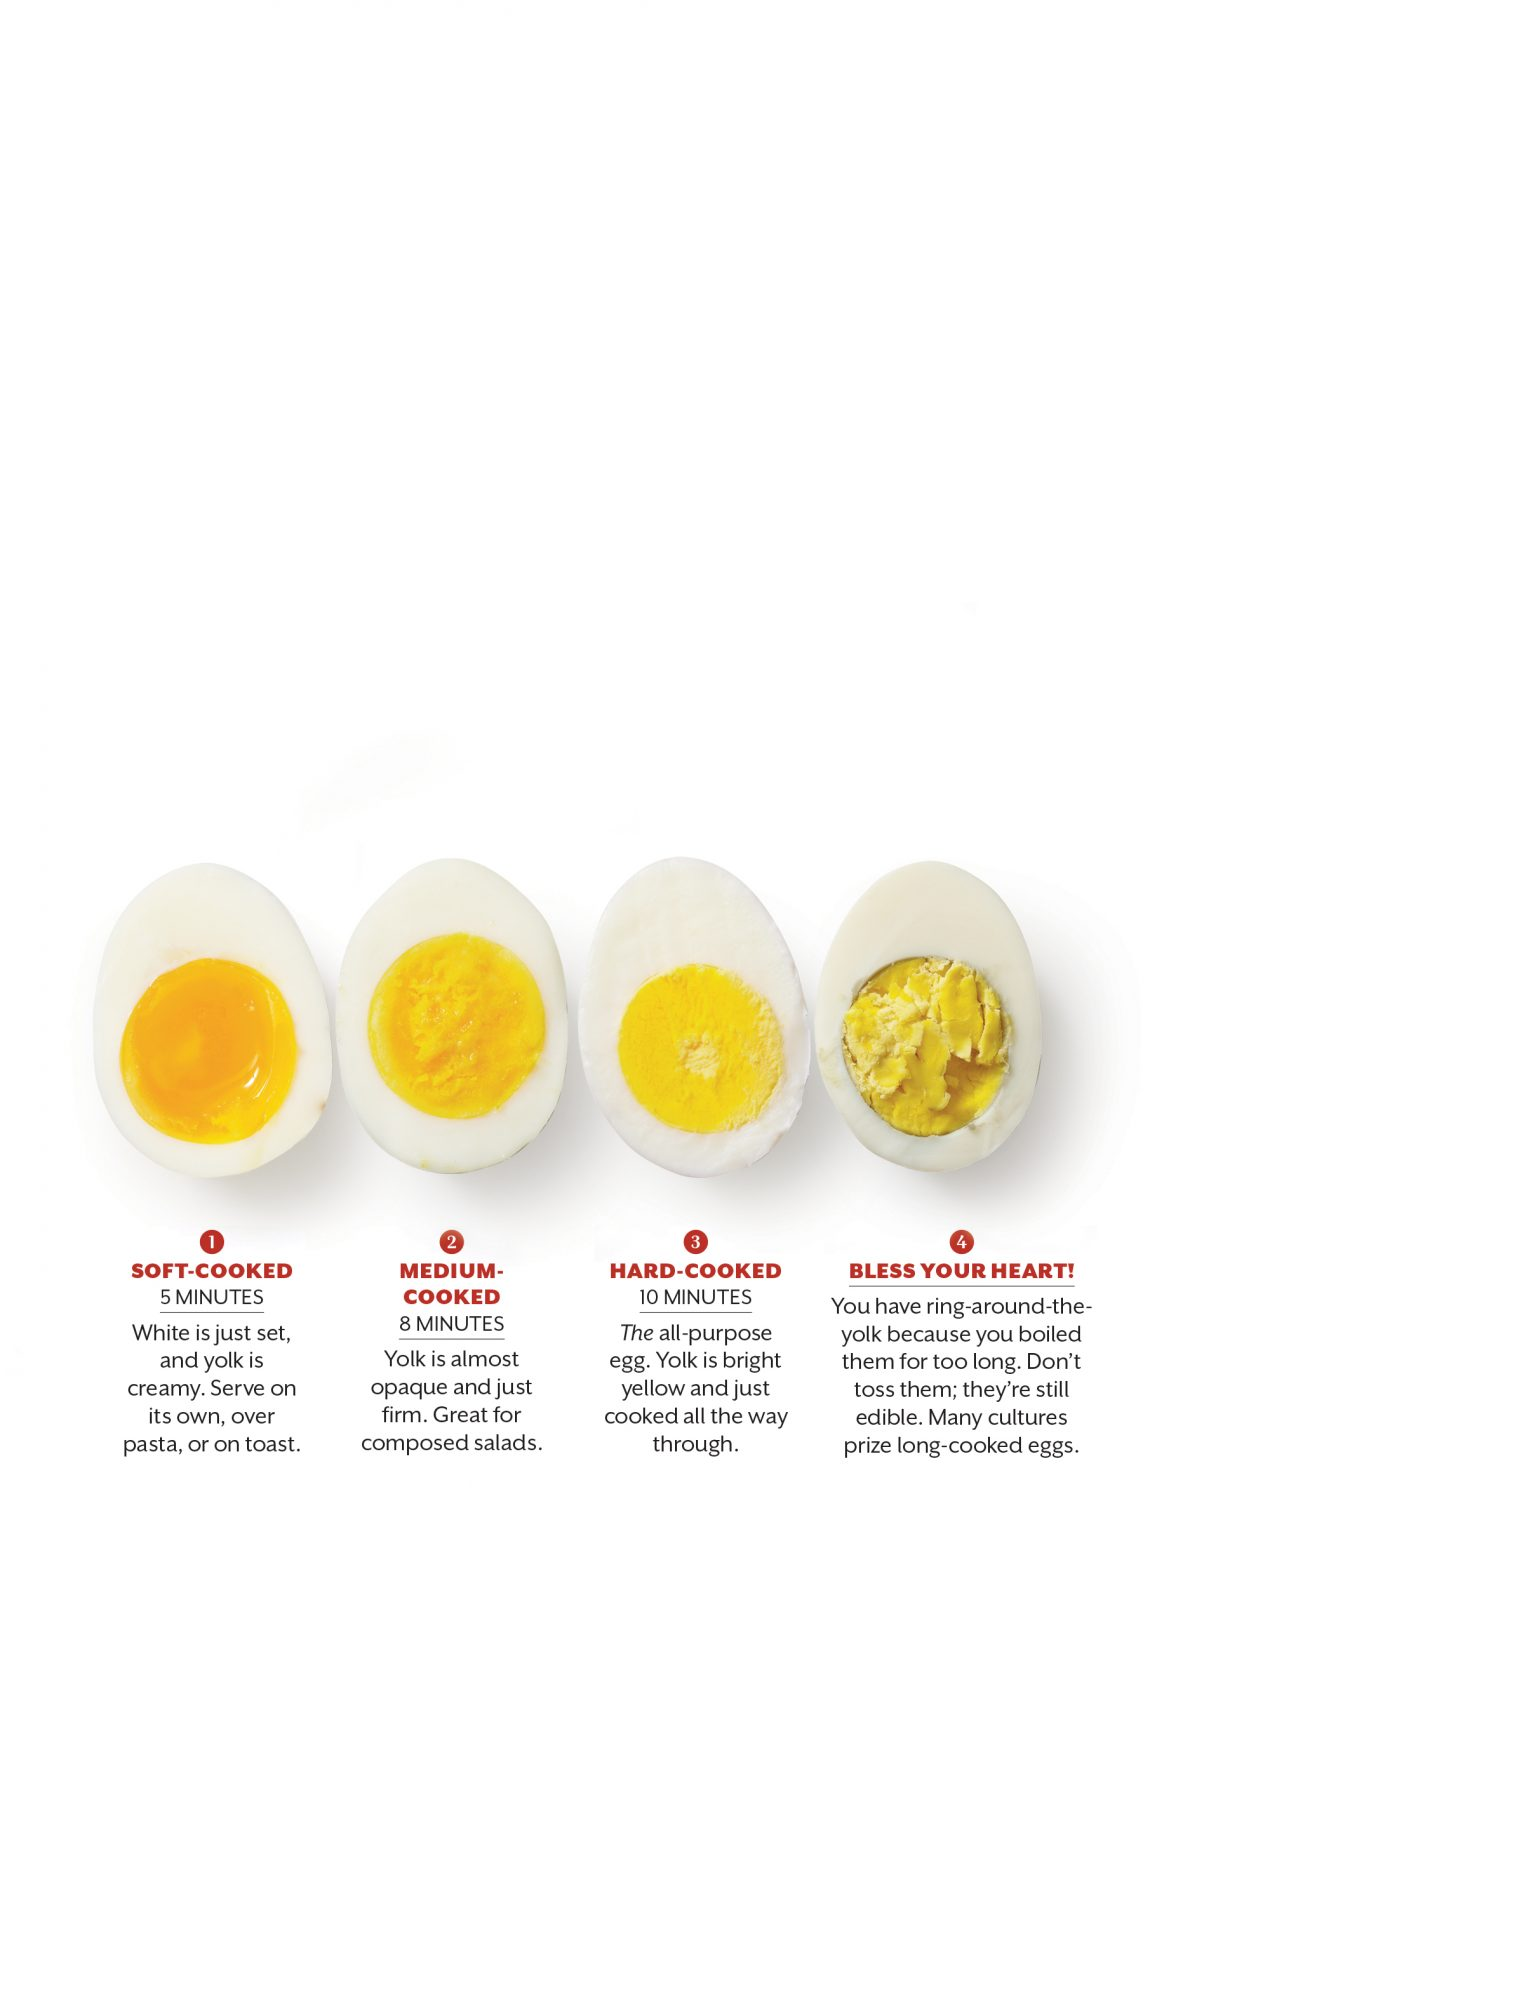 How To Boil Eggs - Southern Living - photo#1